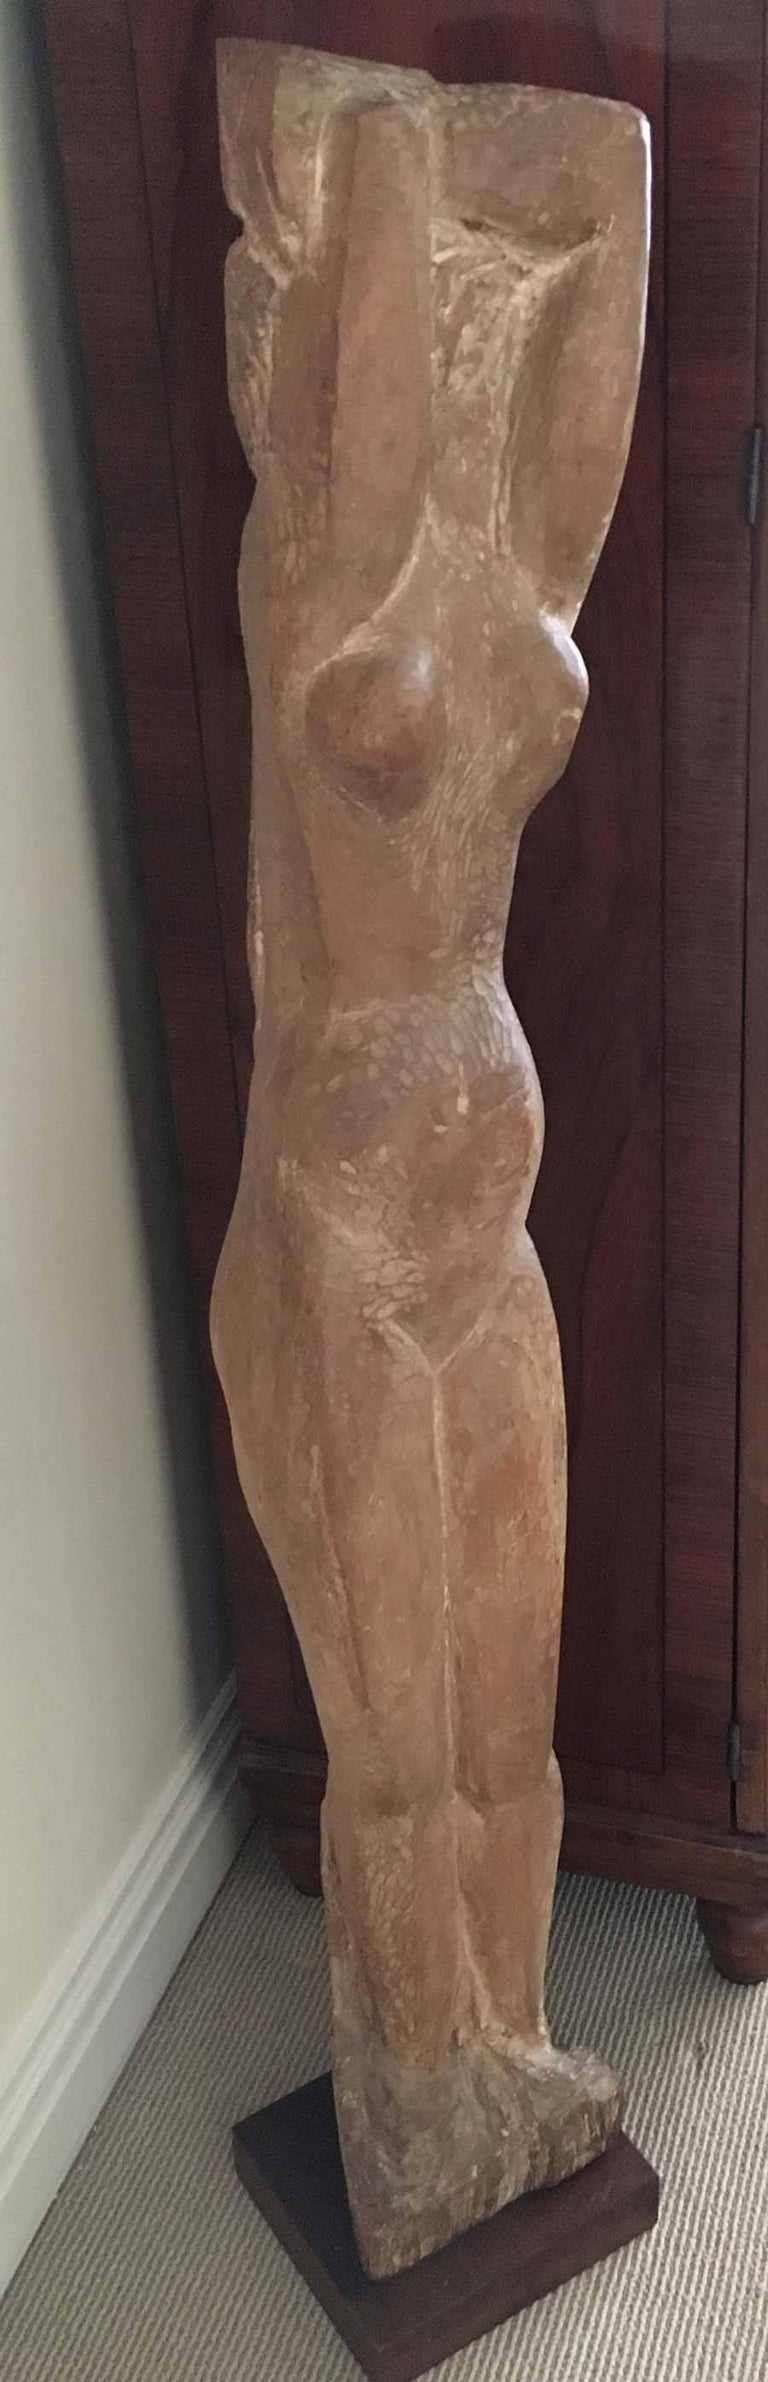 Standing Nude - Brown Figurative Sculpture by Lorrie Goulet